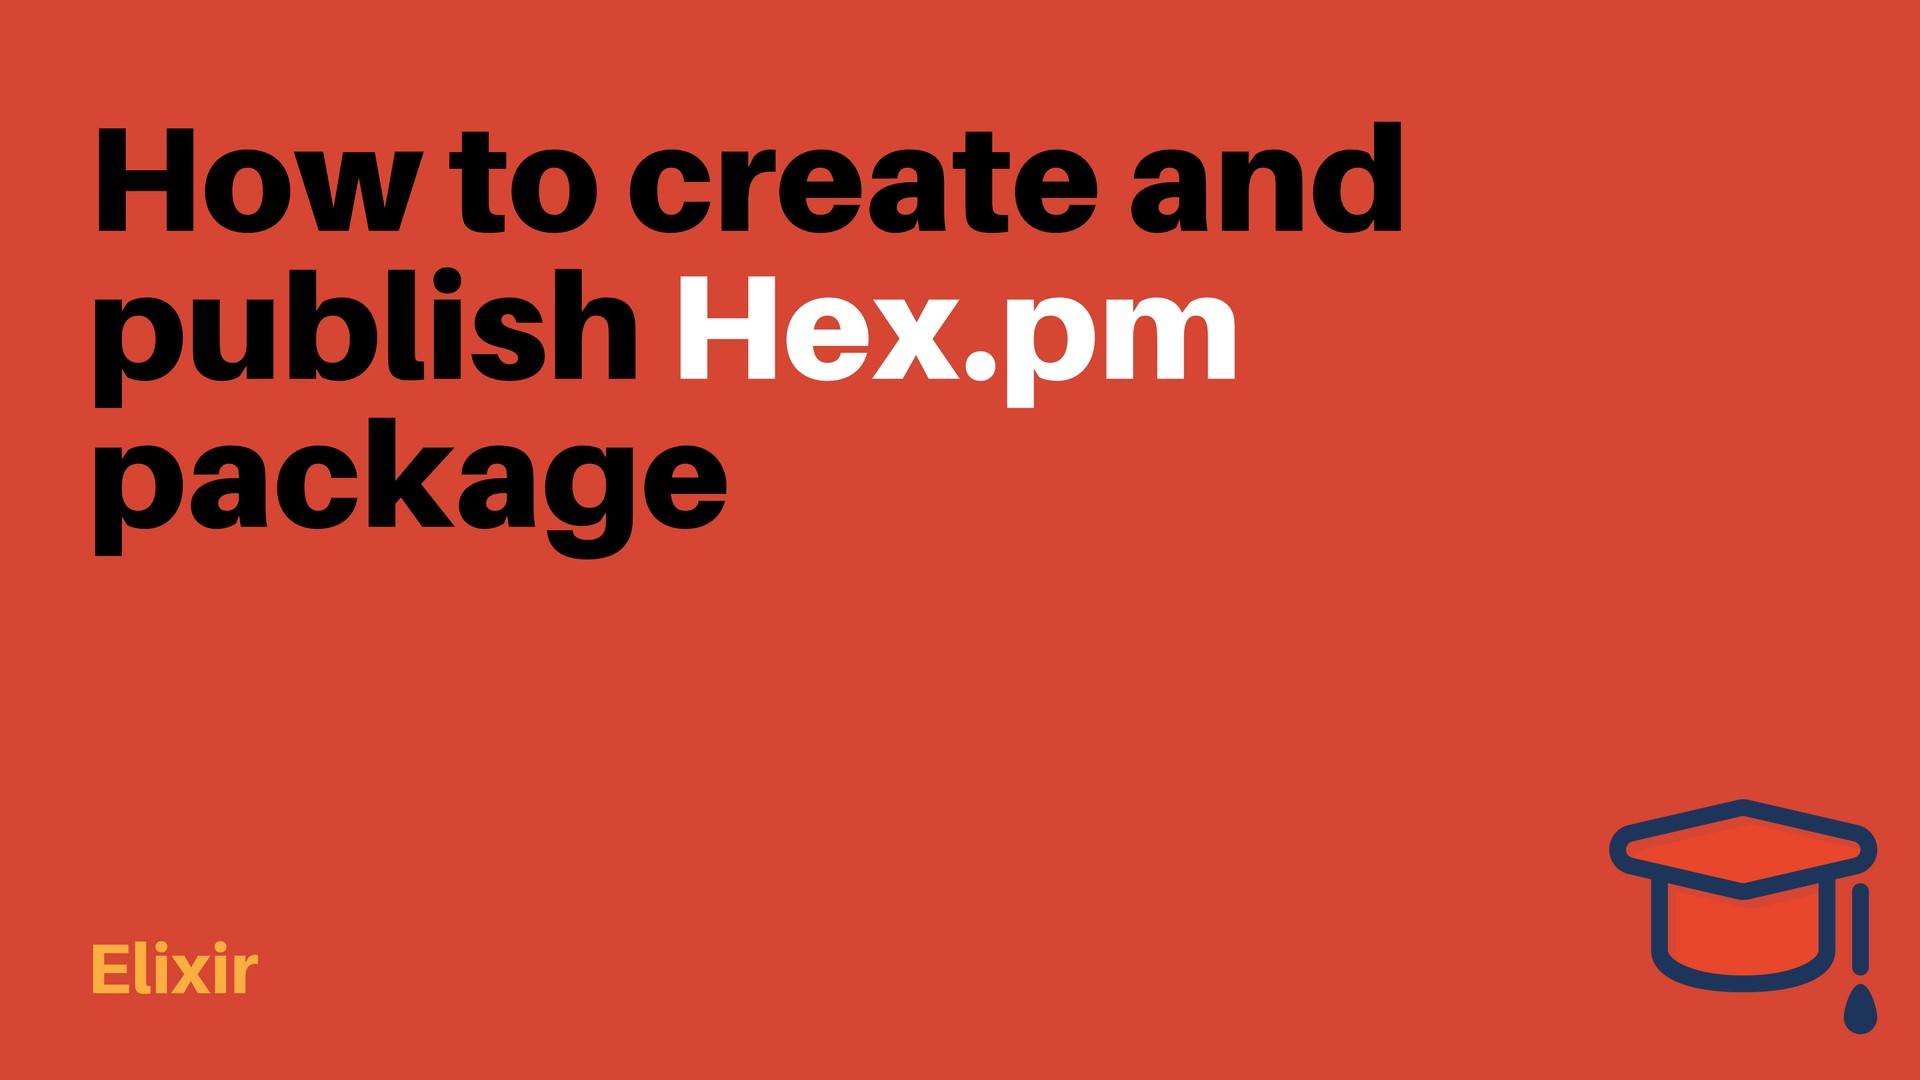 How to create and publish Hex pm package (Elixir